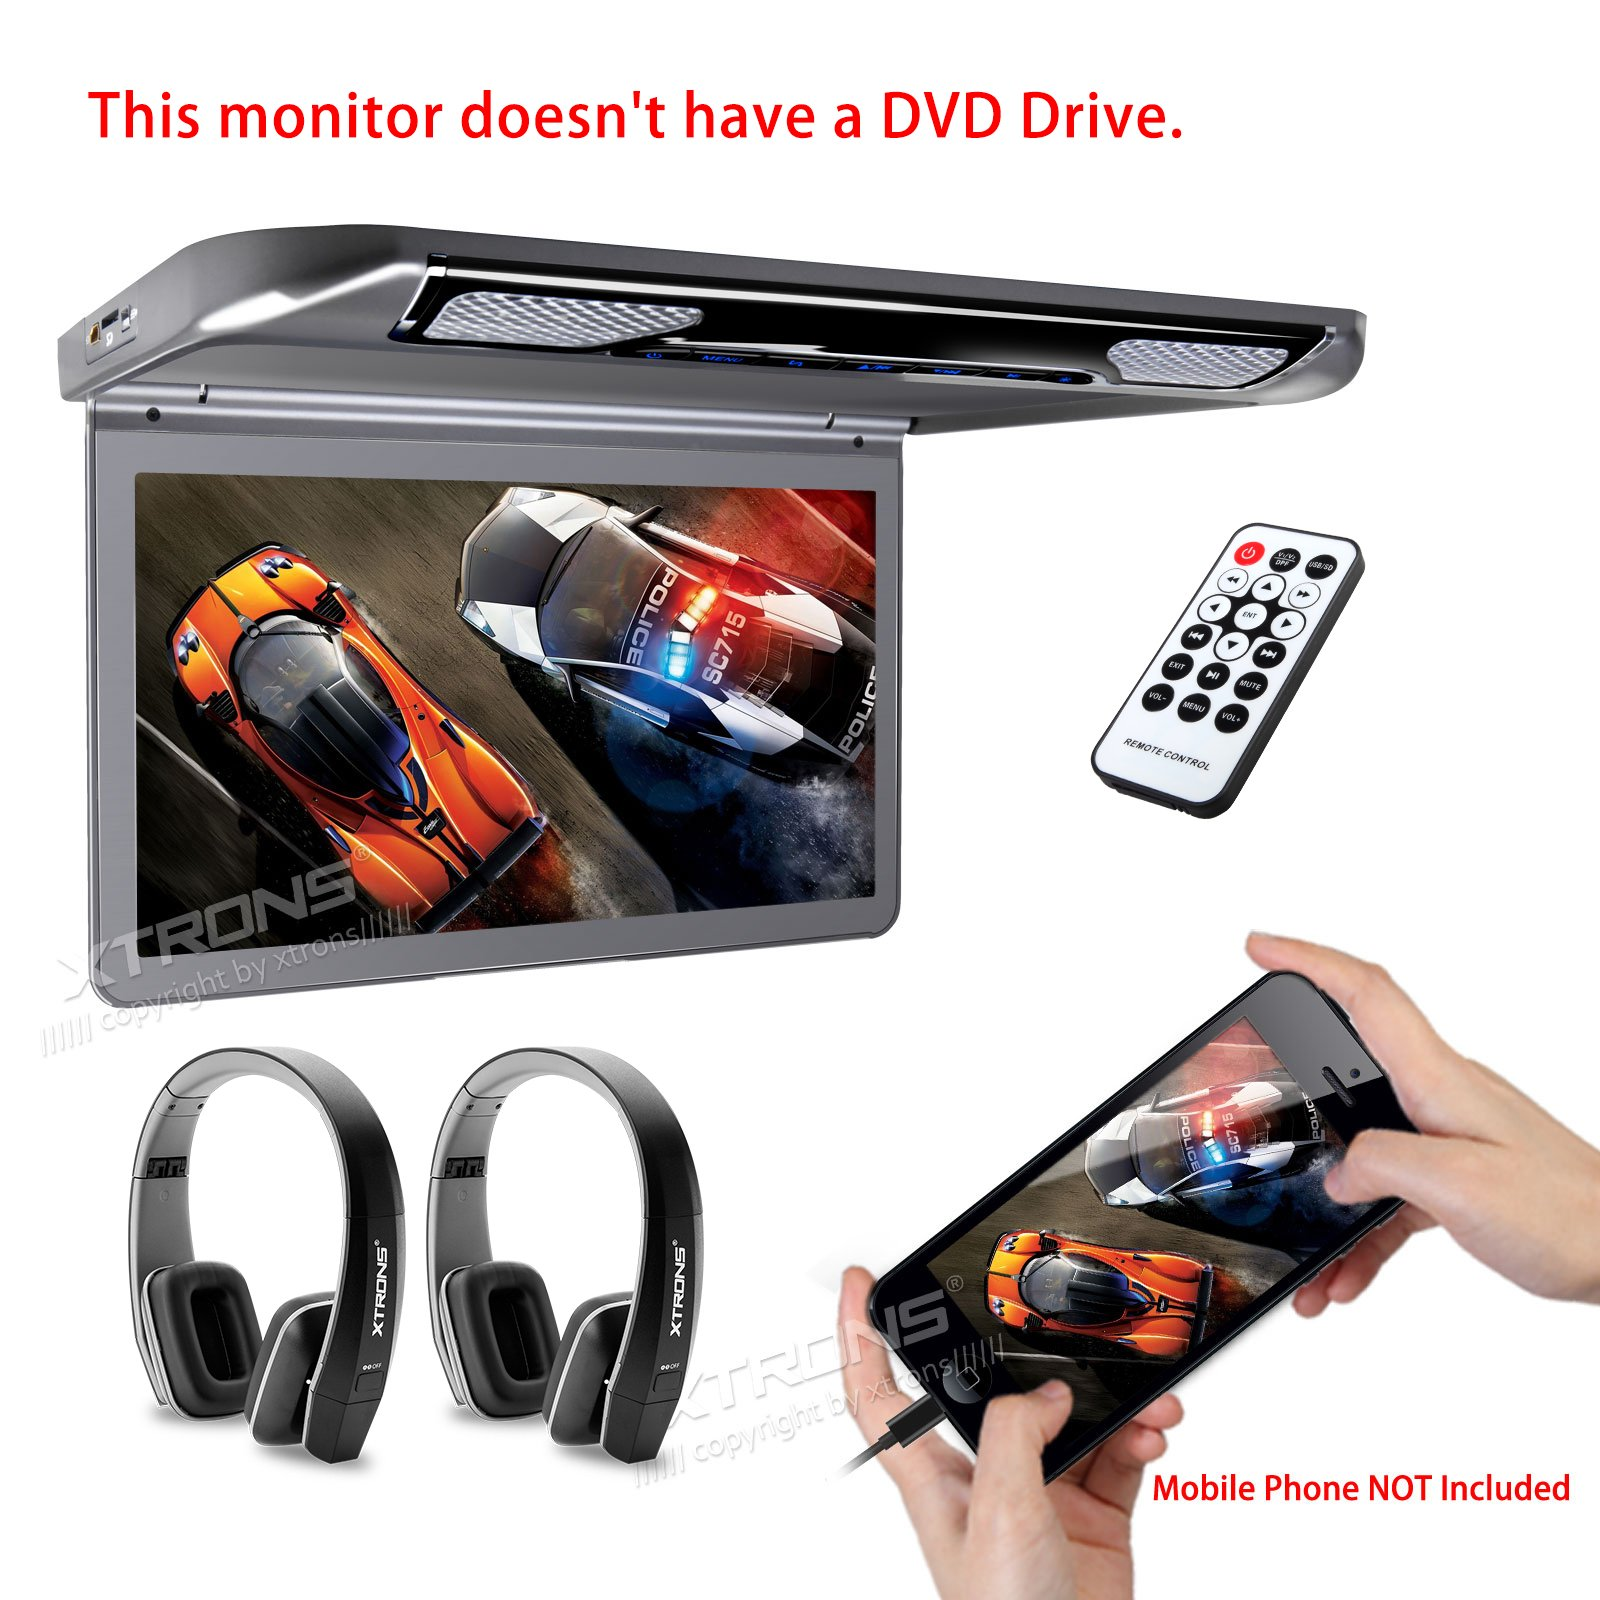 XTRONS 13.3'' HD 1080P Video Car MPV Roof Flip Down Slim Monitor Overhead Player Wide Screen Ultra-thin with HDMI Input New Version Black IR Headphones Included No DVD